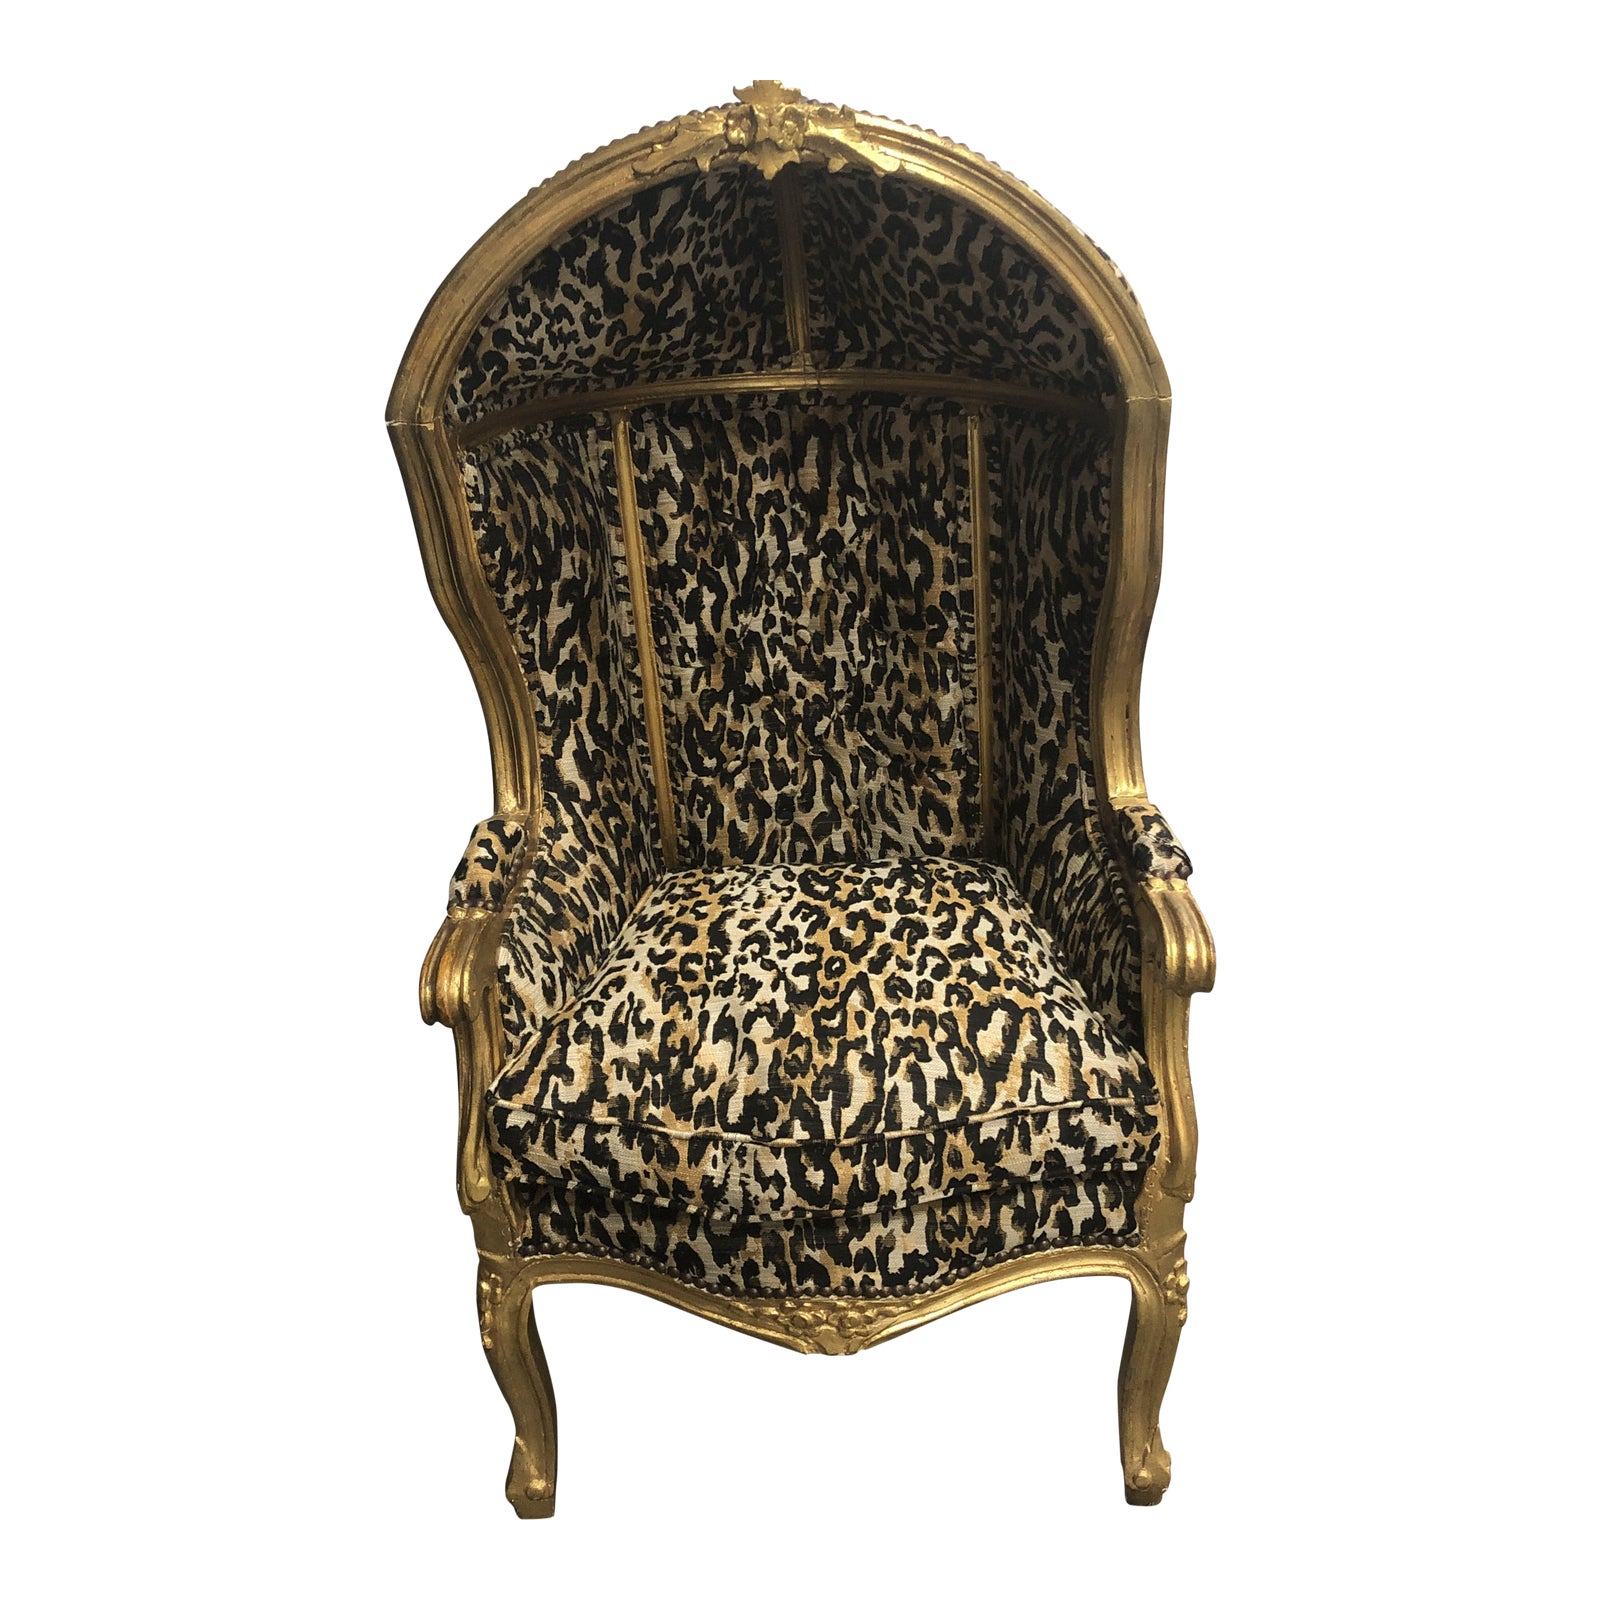 LOUIS XV ARM CHAIR FRENCH STYLE CHAIR VINTAGE FURNITURE LEOPARD AND GOLD WOOD